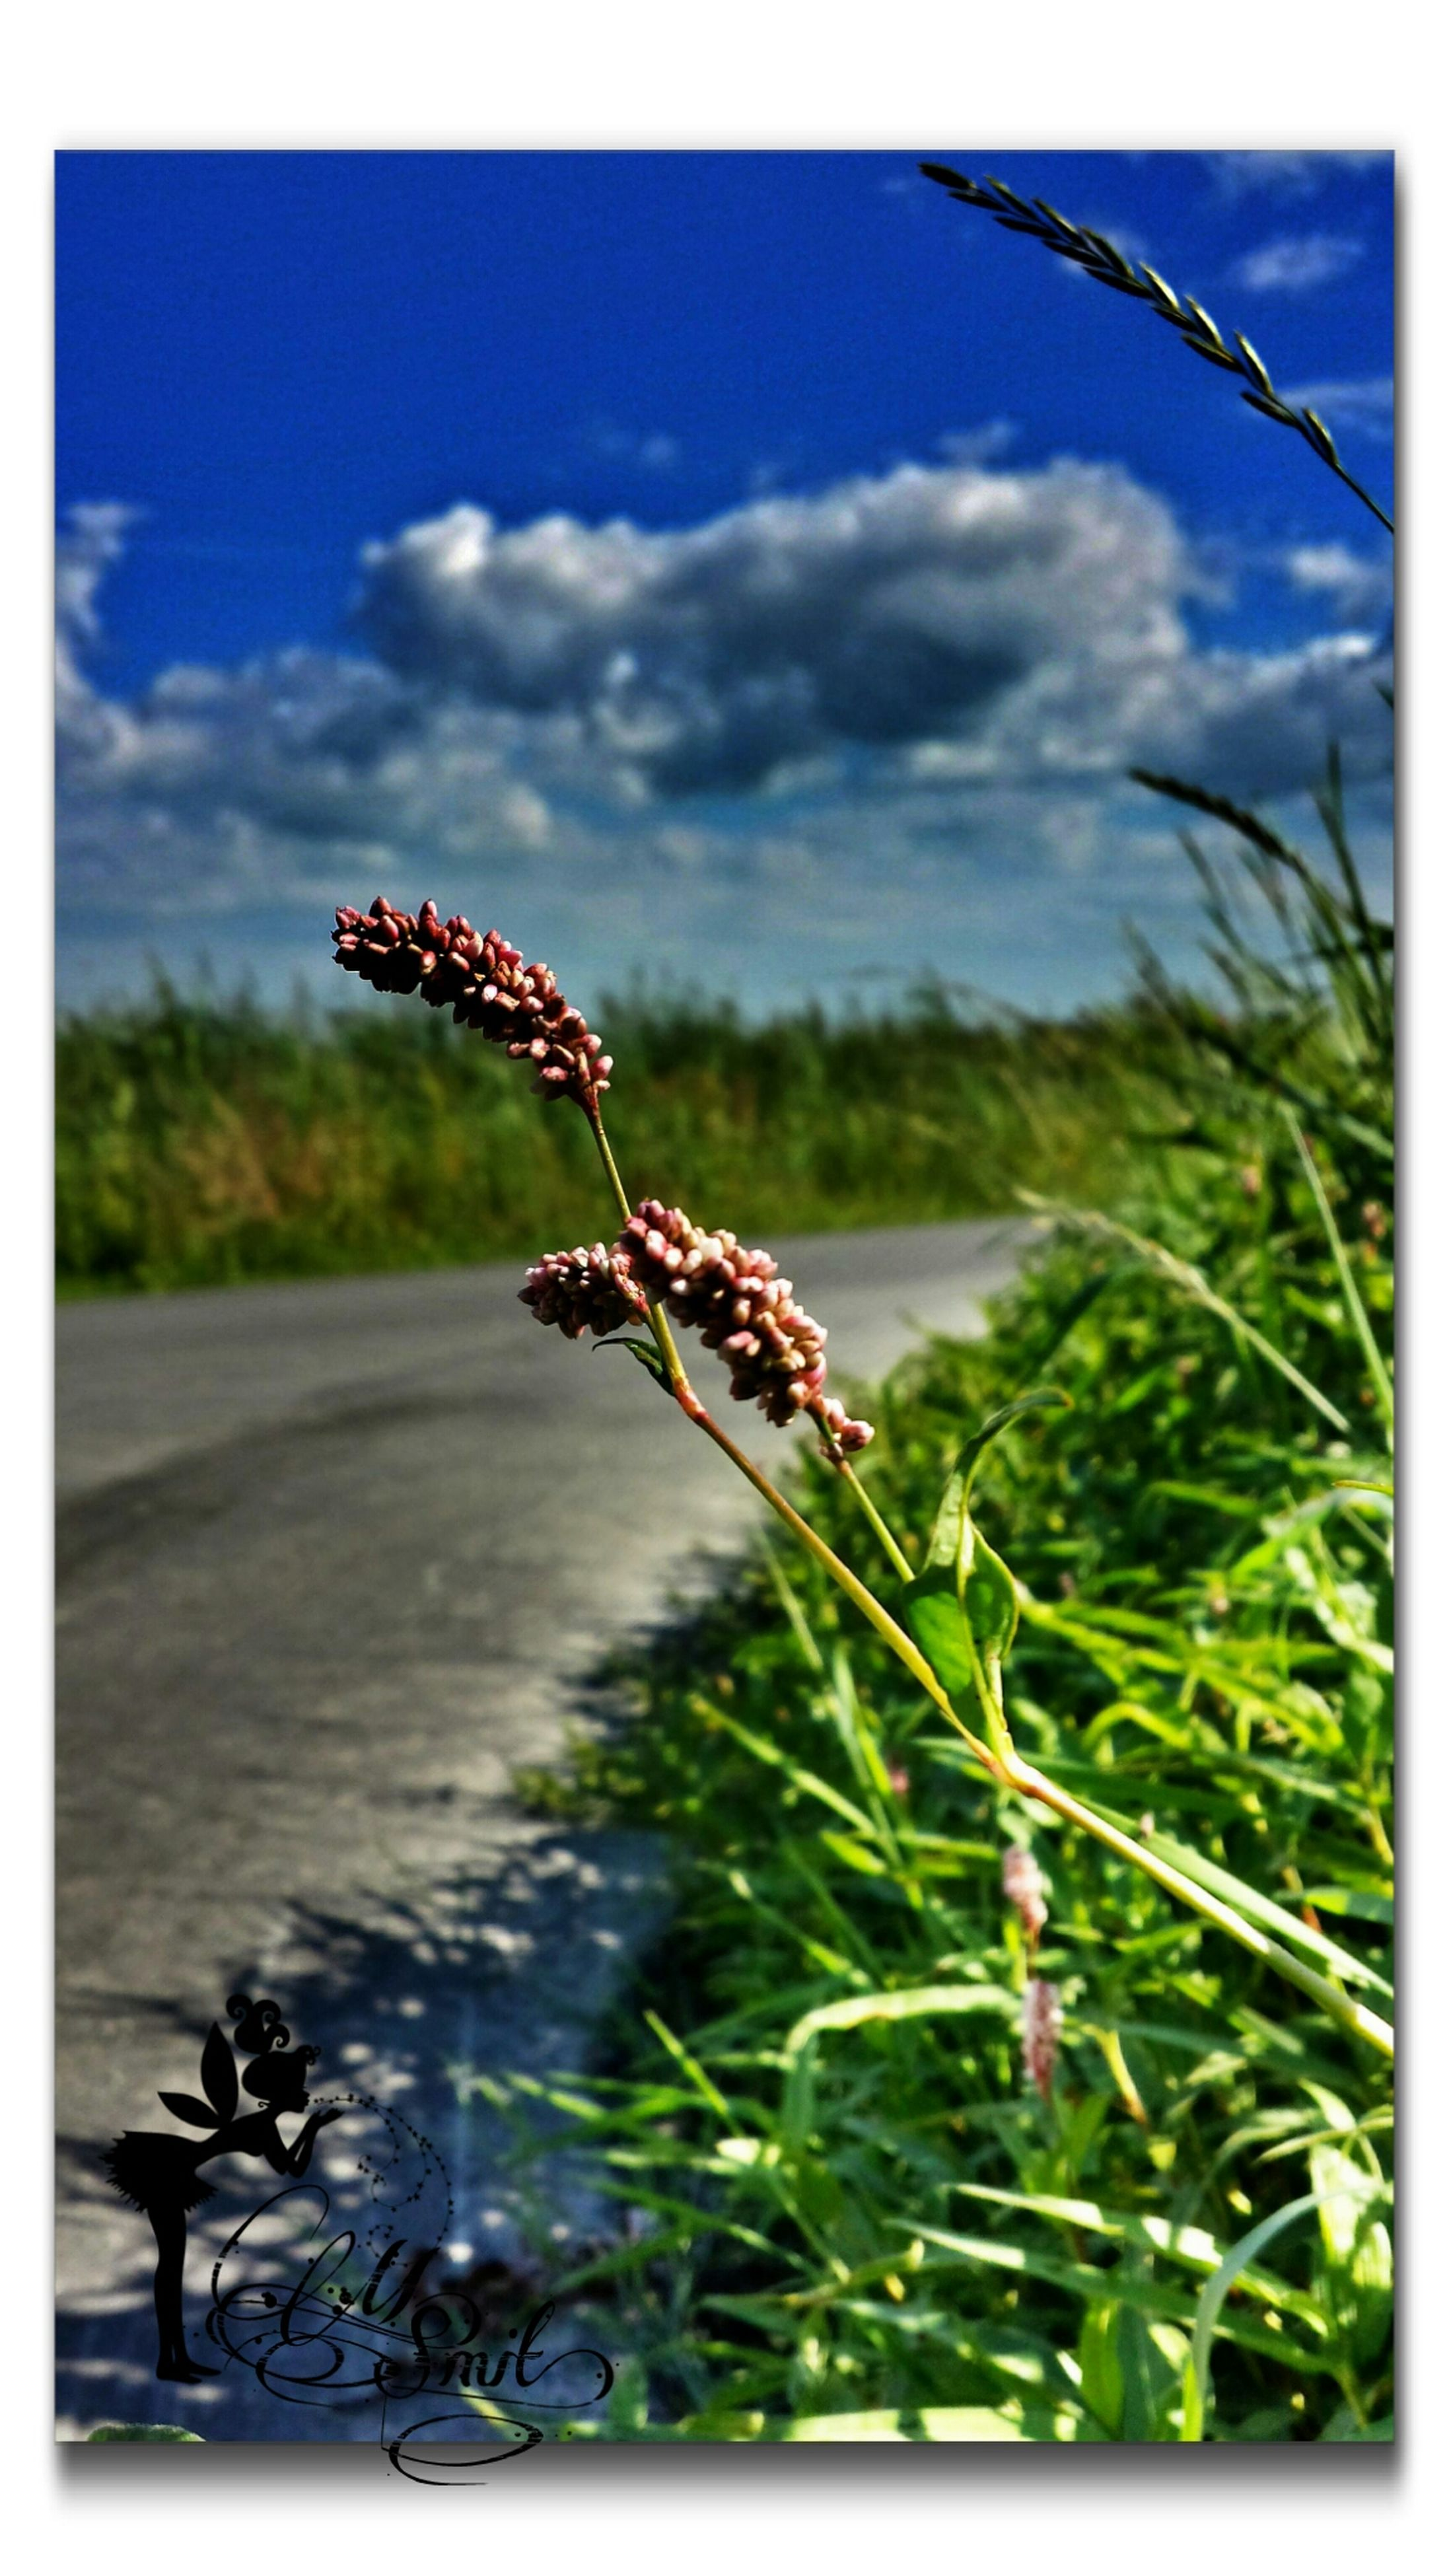 transfer print, auto post production filter, sky, plant, cloud - sky, animal themes, insect, animals in the wild, focus on foreground, wildlife, one animal, nature, outdoors, selective focus, day, cloud, cloudy, close-up, no people, grass